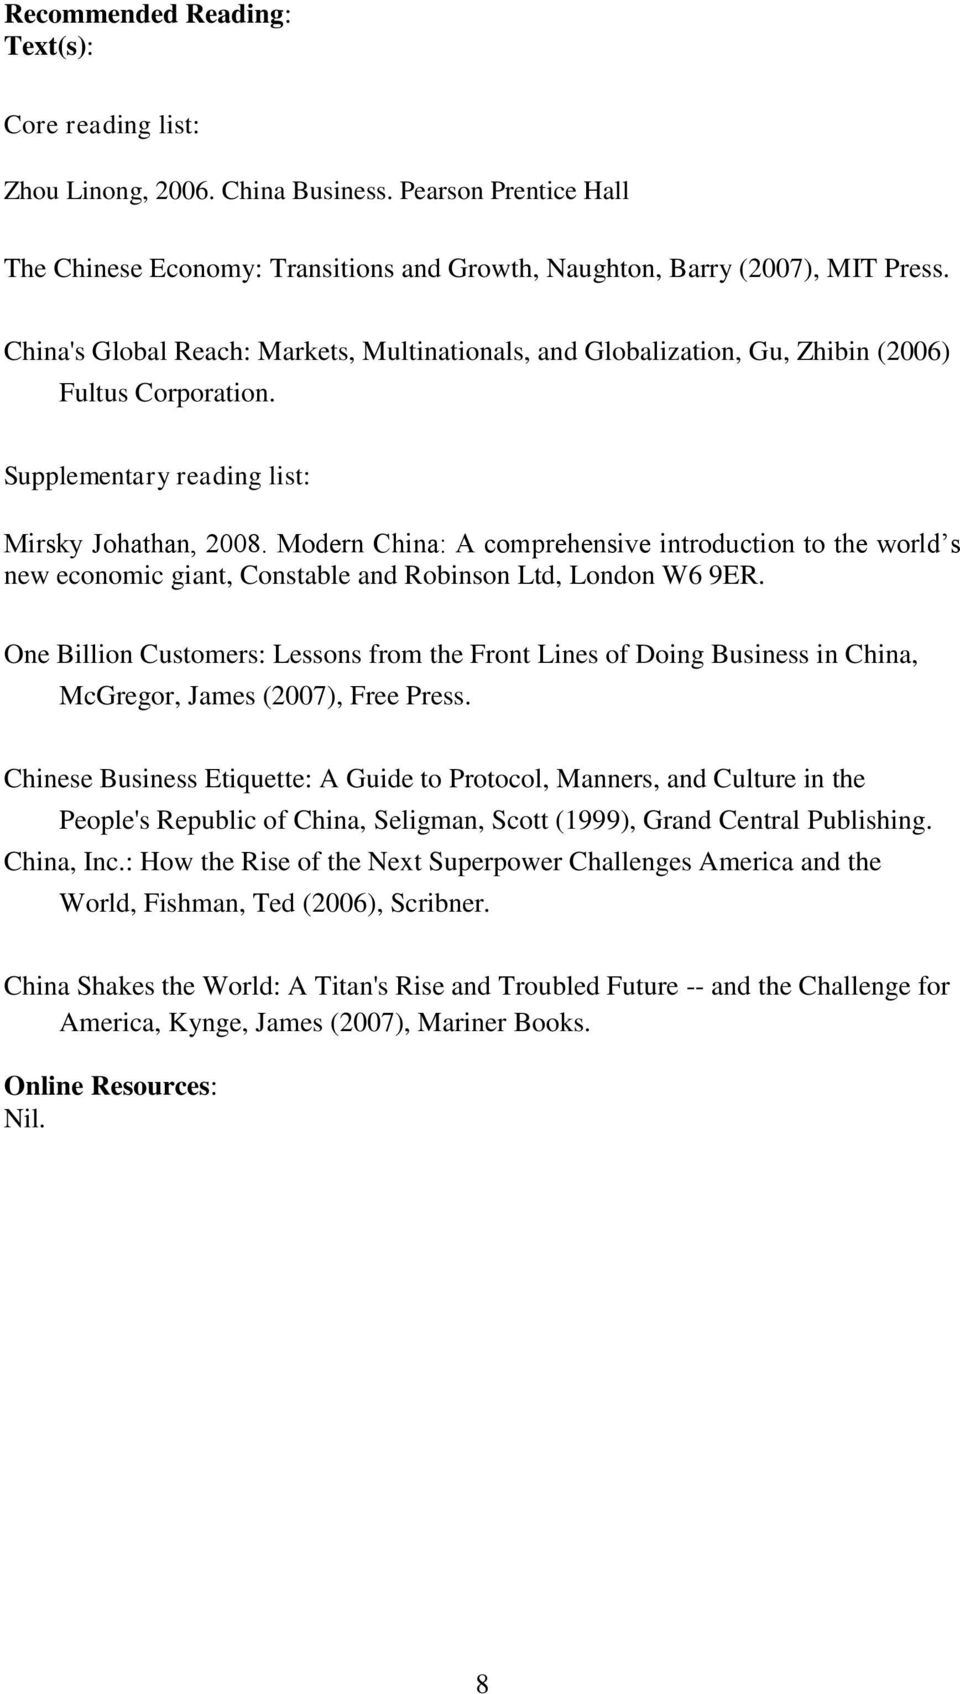 Modern China: A comprehensive introduction to the world s new economic giant, Constable and Robinson Ltd, London W6 9ER.